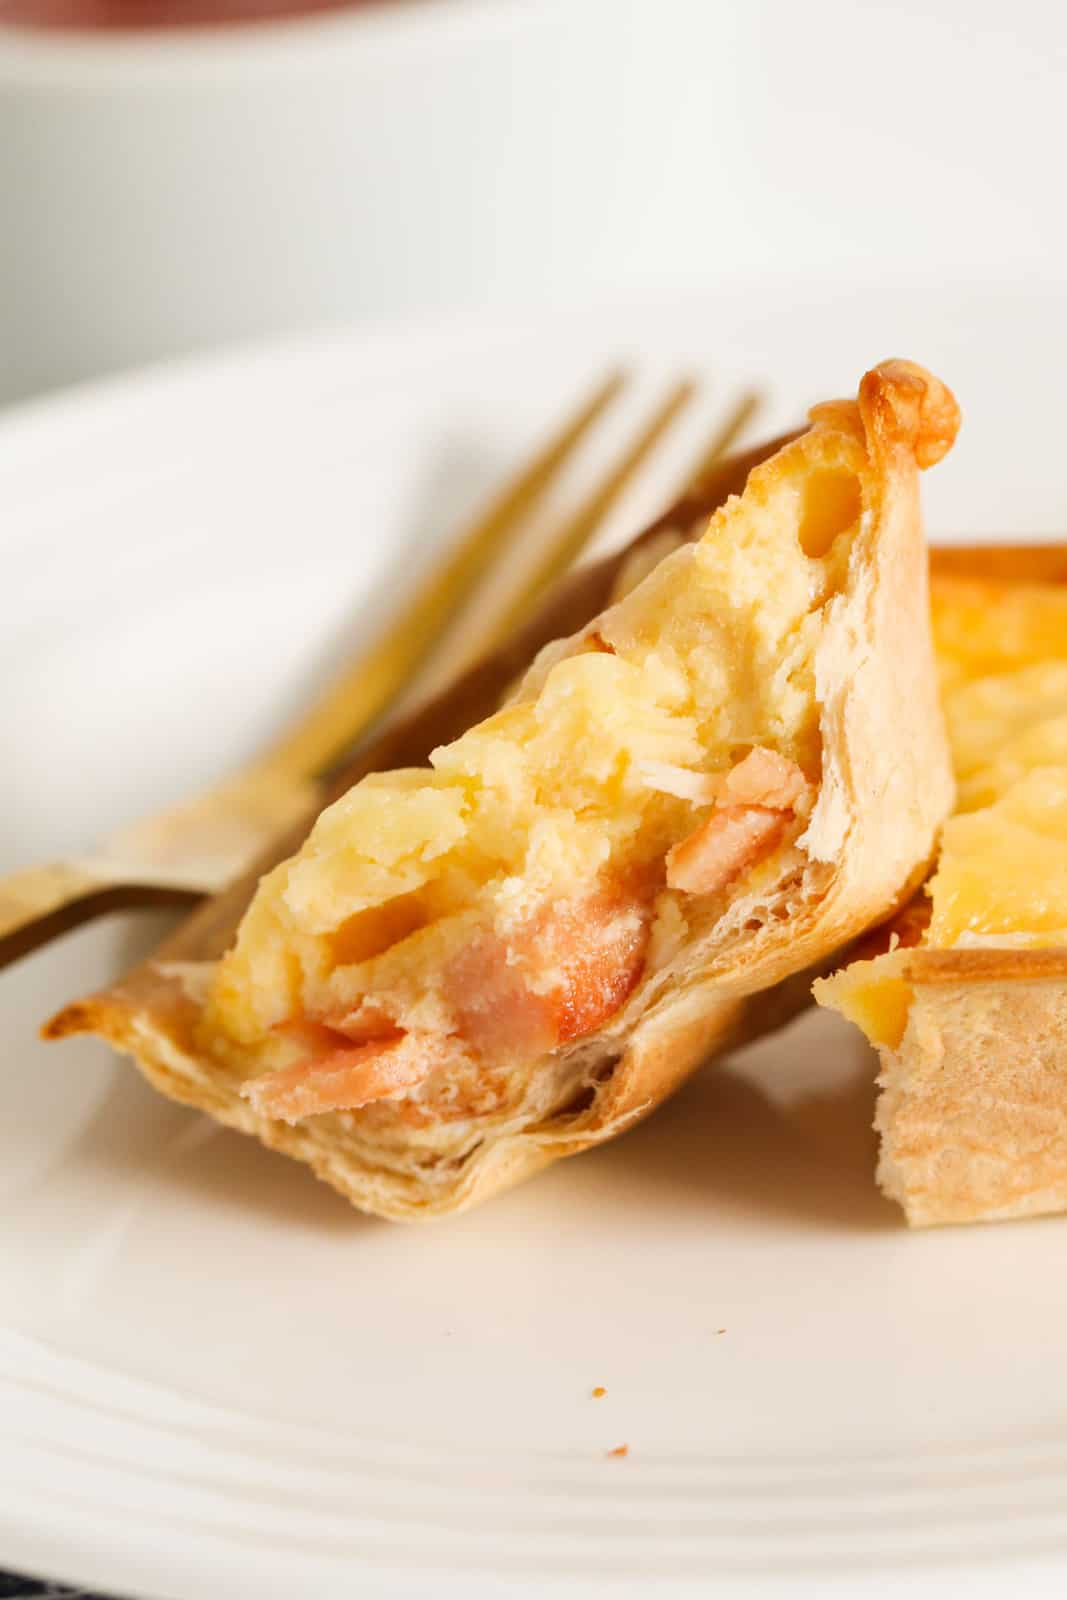 A tortilla quiche cut in half on a white plate showing the inside filling